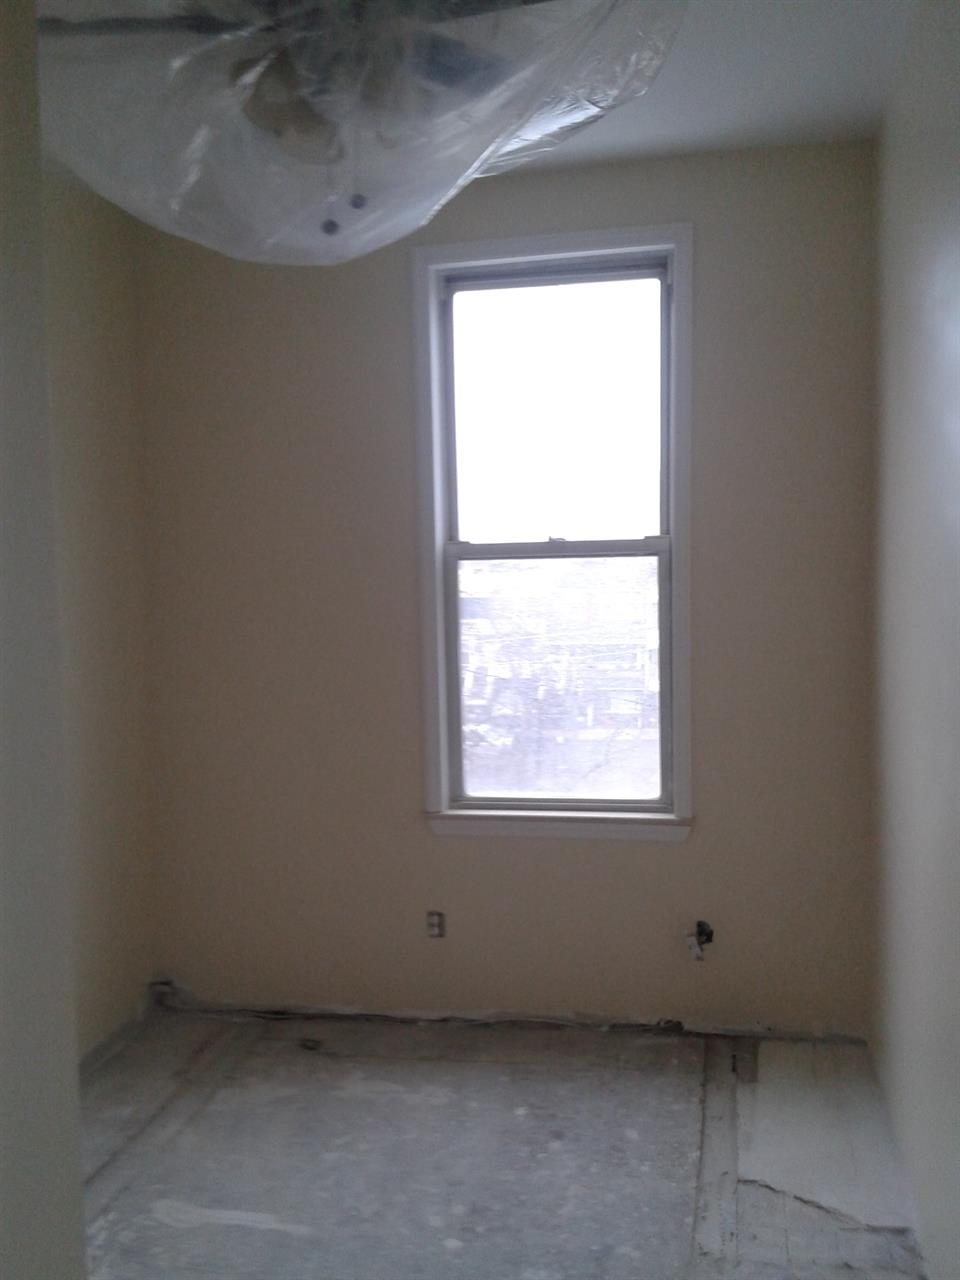 Additional photo for property listing at 12th Ave And 65th St  Brooklyn, New York 11219 United States